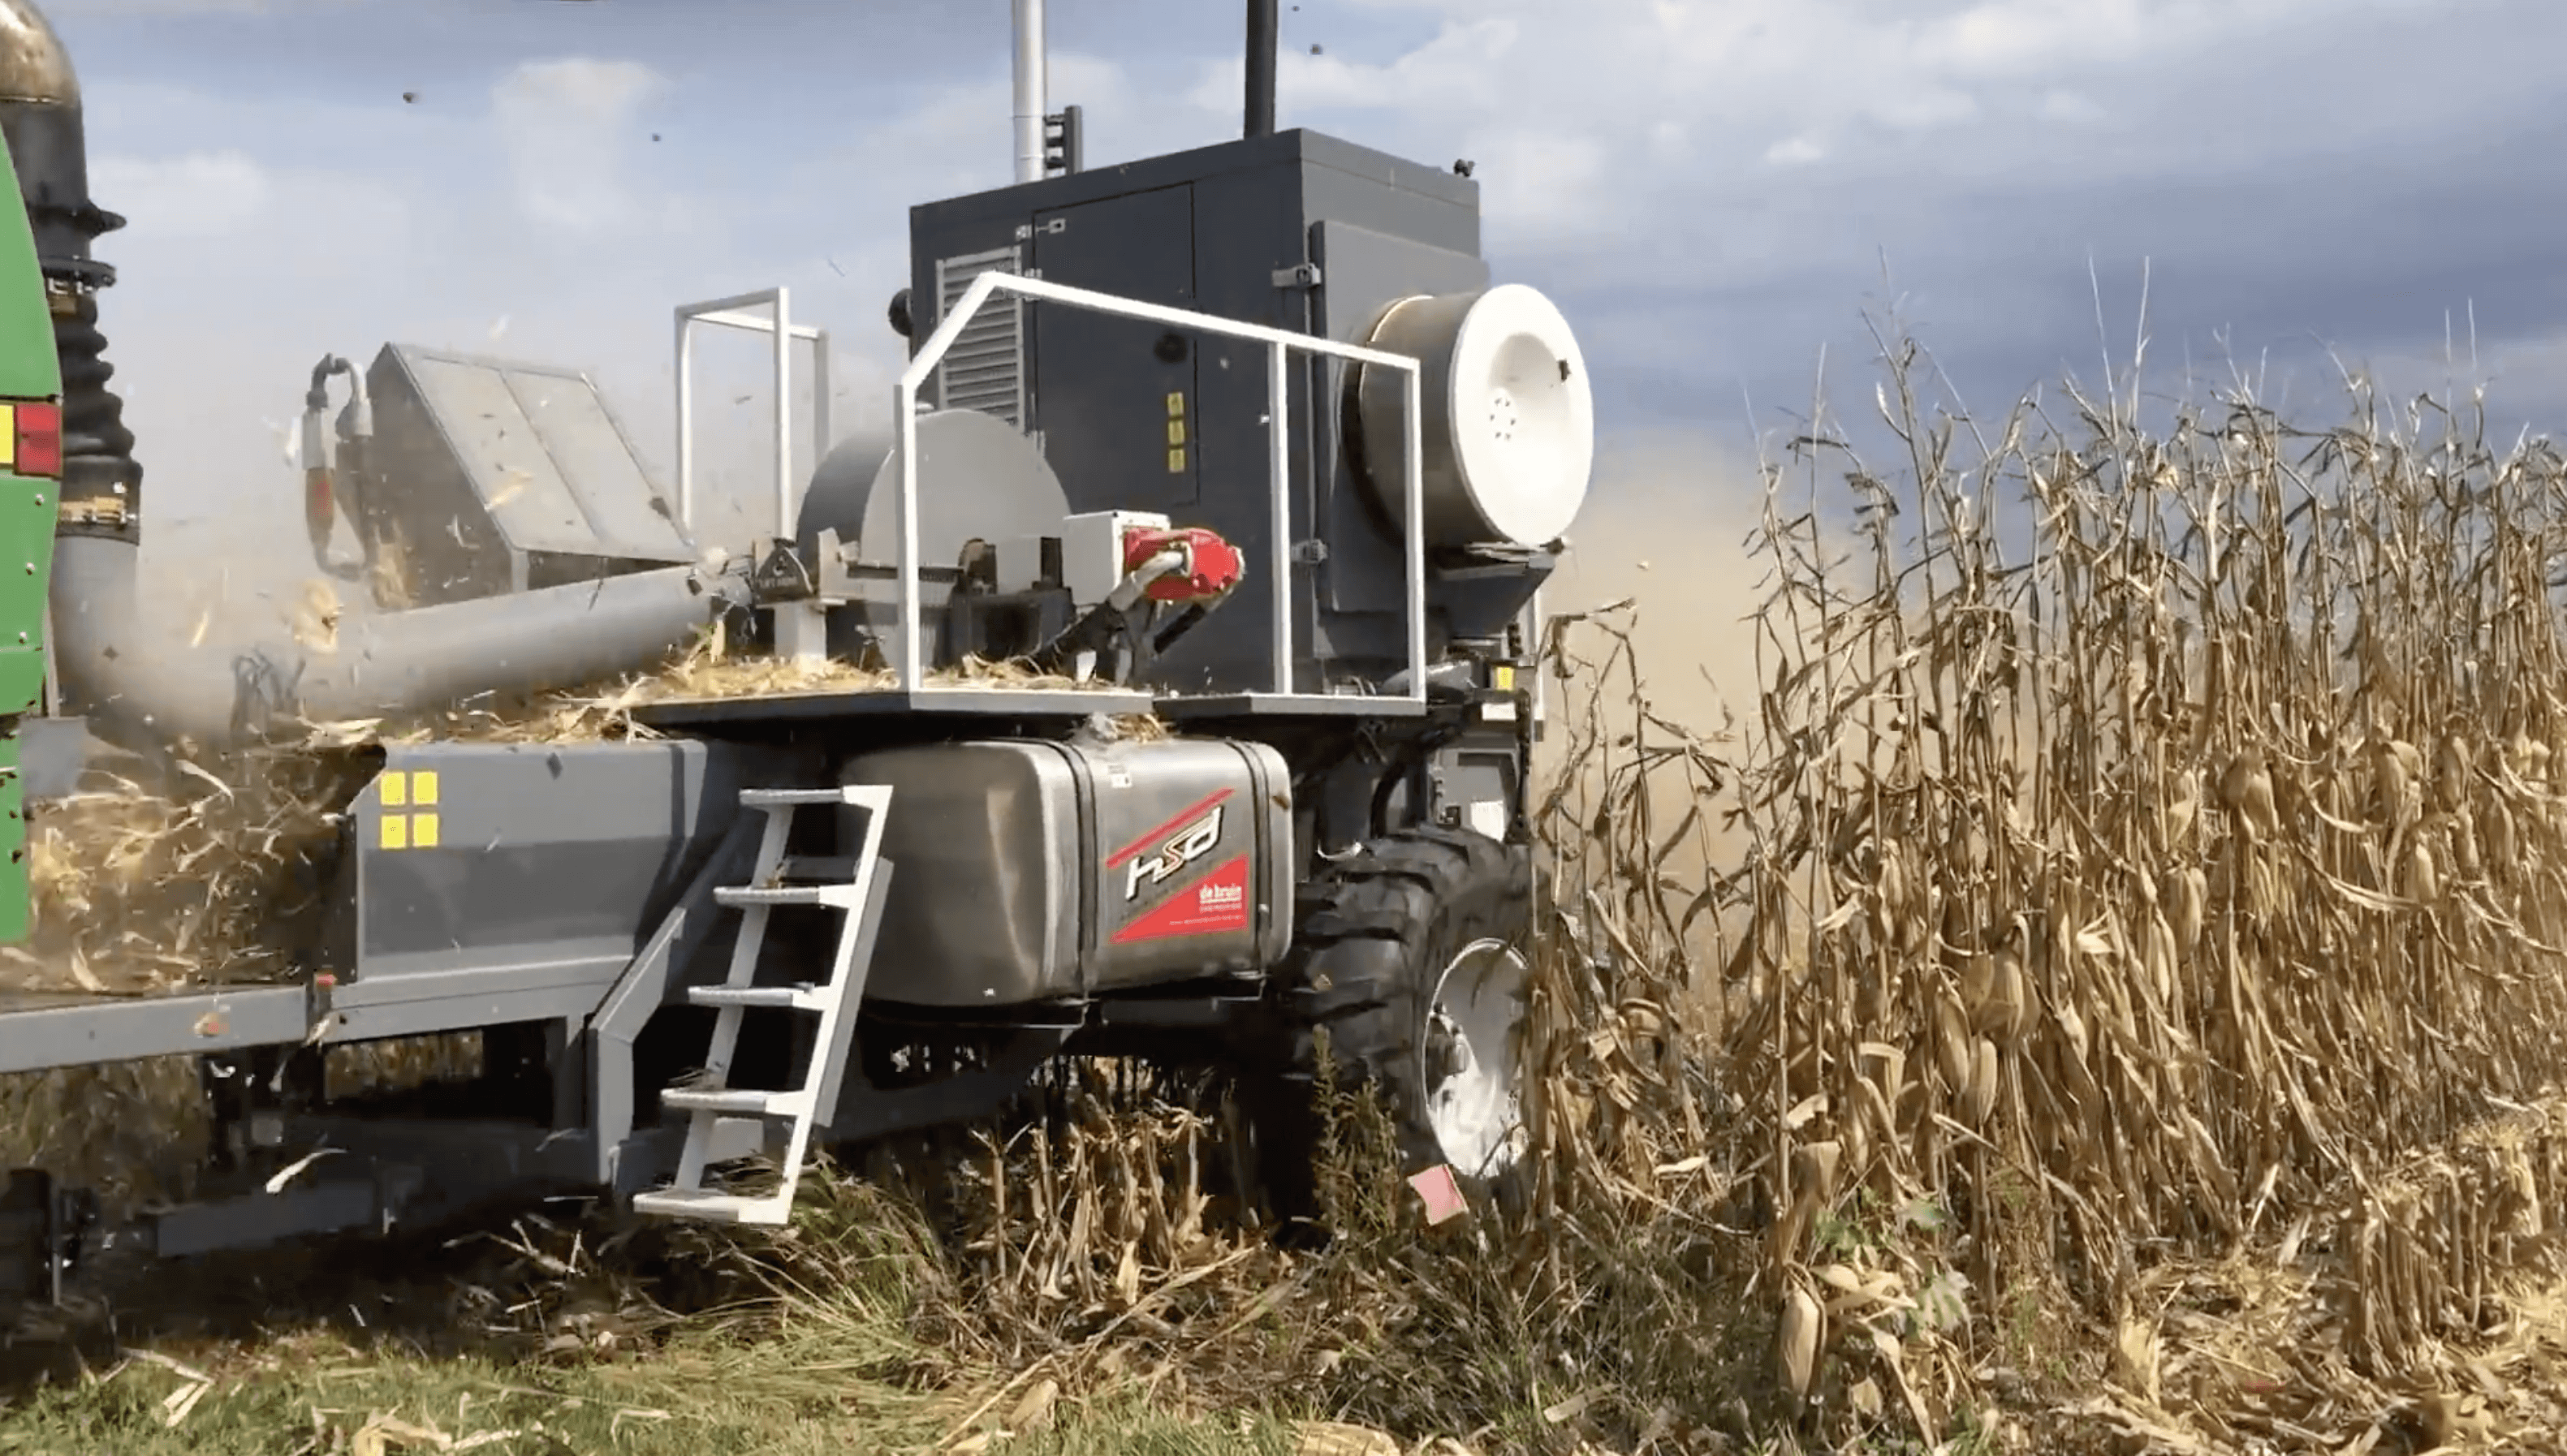 Video: 'Weed seed pulverizing machine' could help combat herbicide resistance